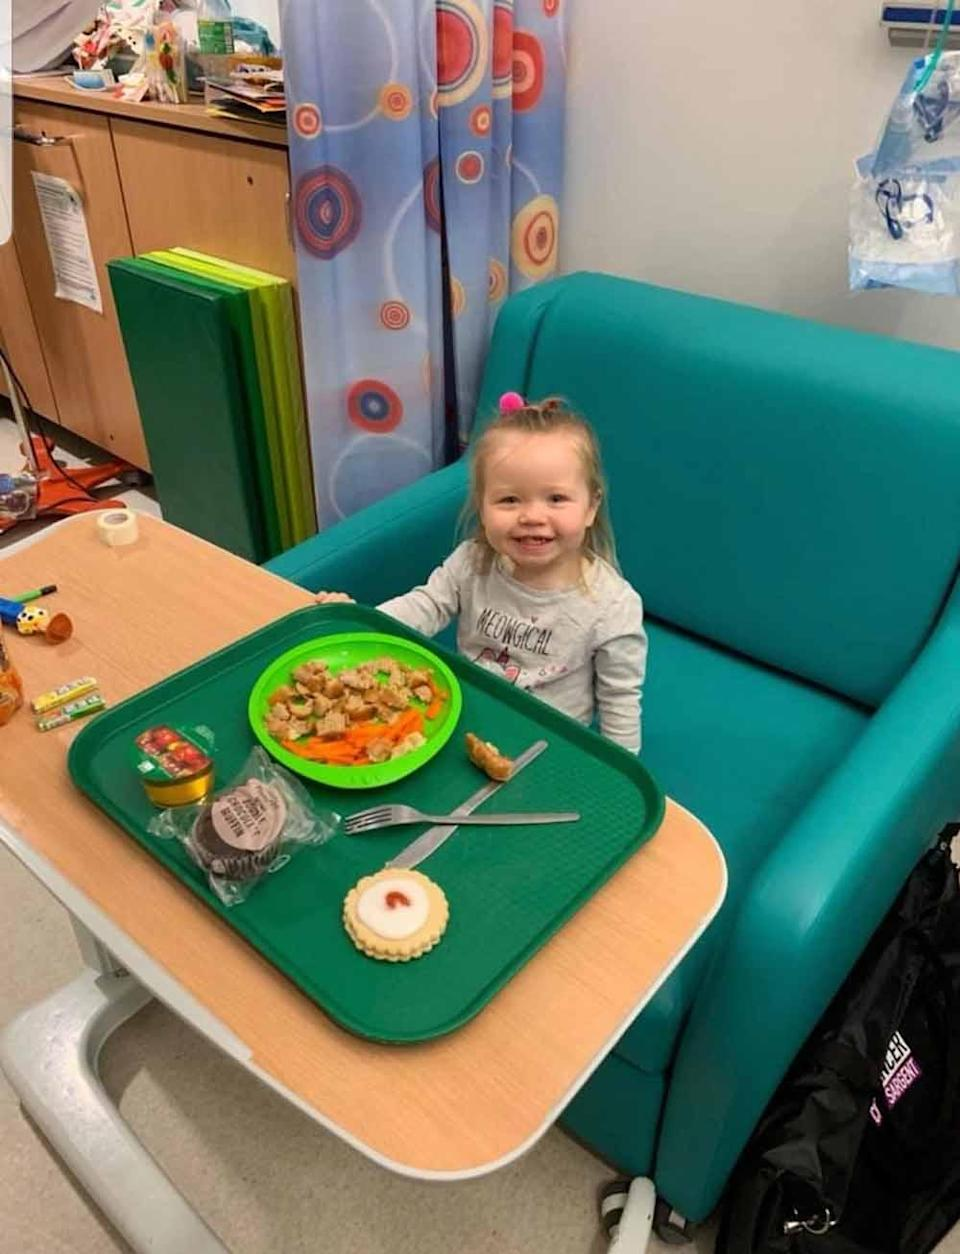 Evie after her first round of chemotherapy. PA REAL LIFE COLLECT